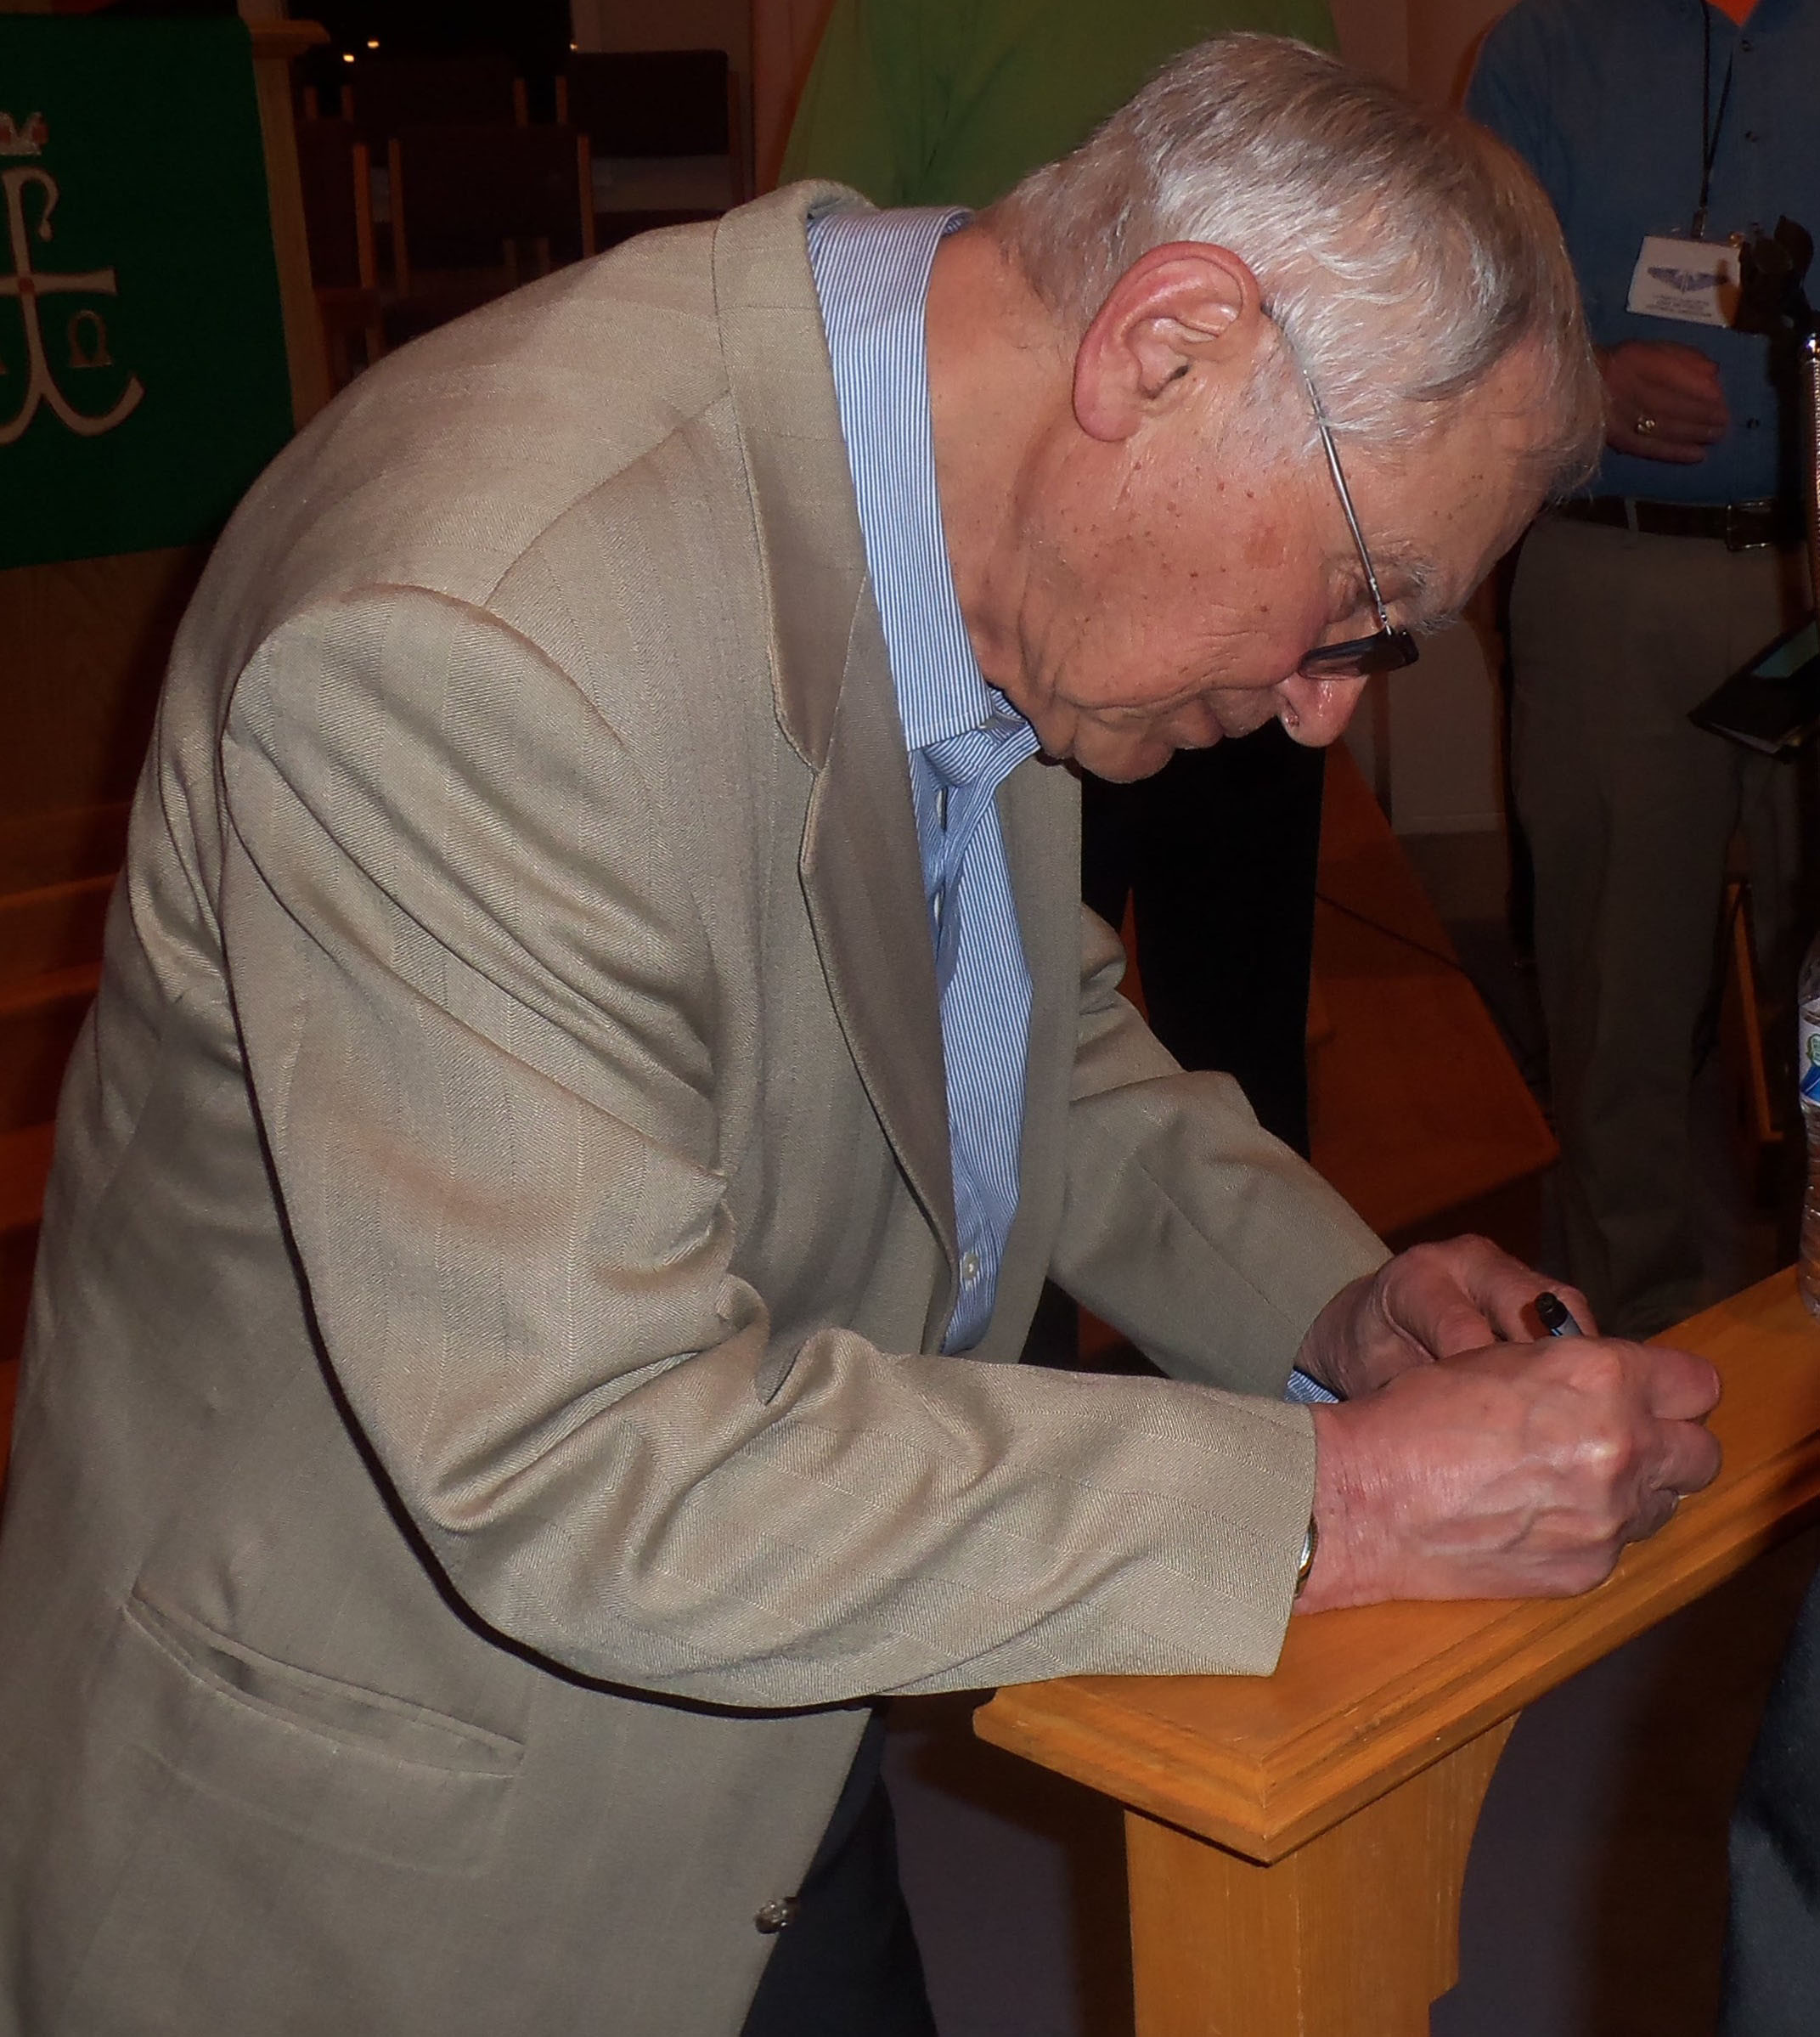 Holocaust survior Ernie Gross signs an autograph for a young admirer at the Central Pennsylvania WWII Roundtable held March 2 at Grace United Methodist Church, Hummelstown.